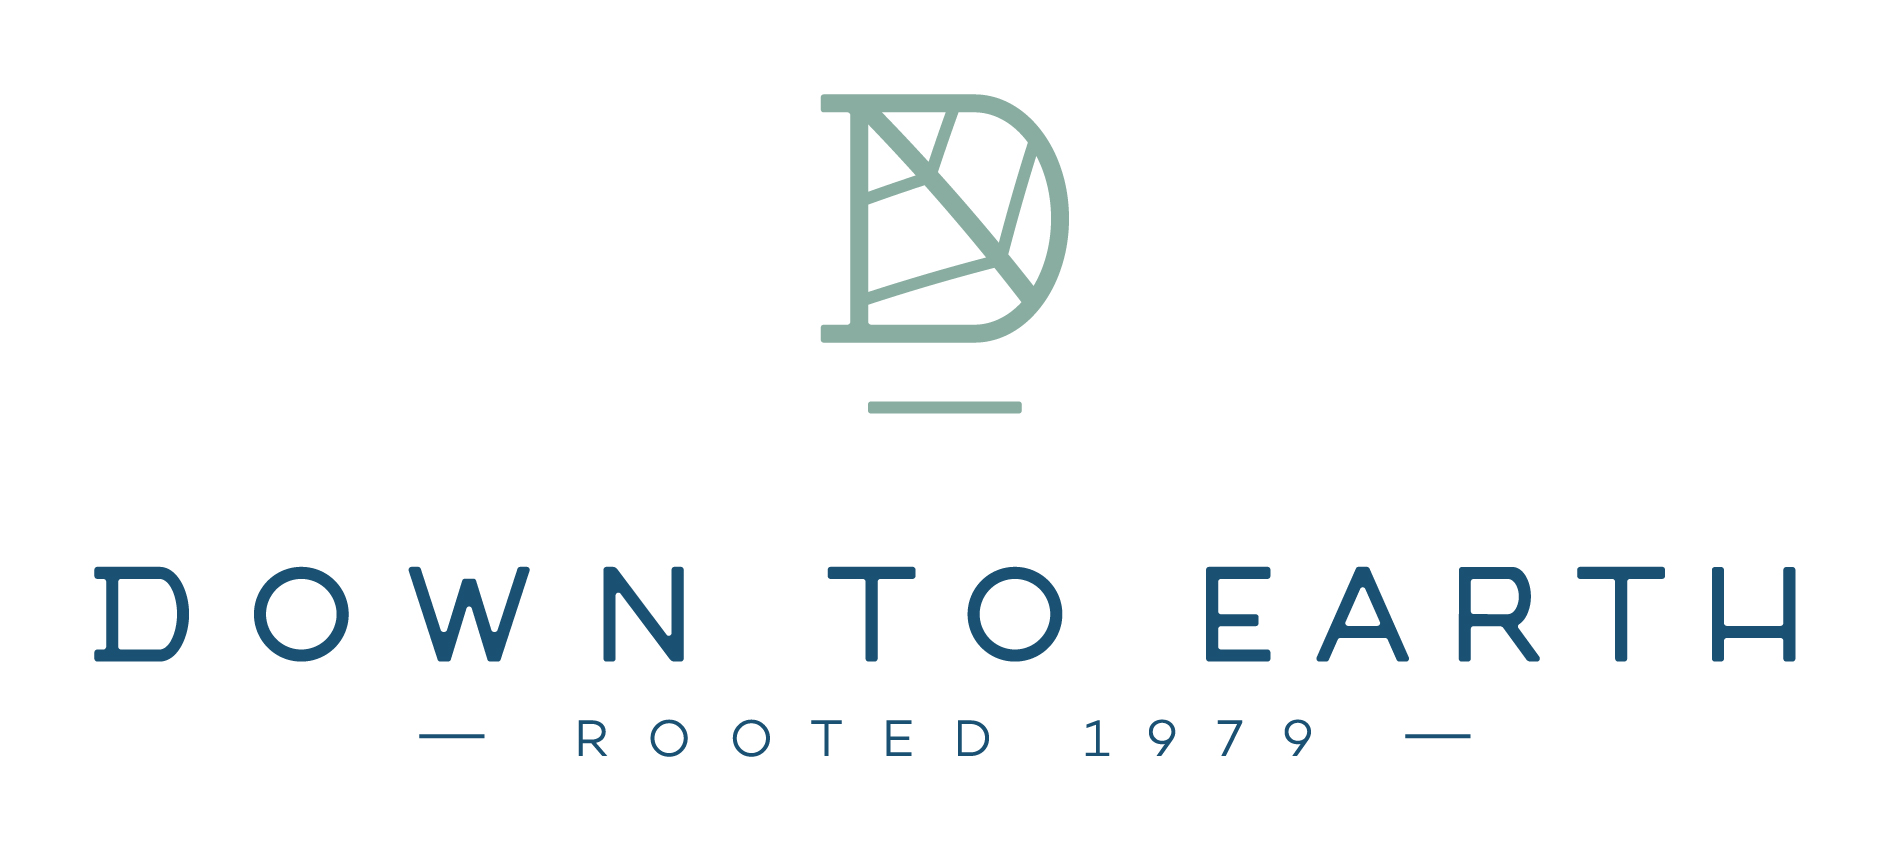 THE OUTDOOR MUSIC TENT - The Fete Committee would like to thank Down to Earth Trees Ltd for, once again, sponsoring our outside music stage.